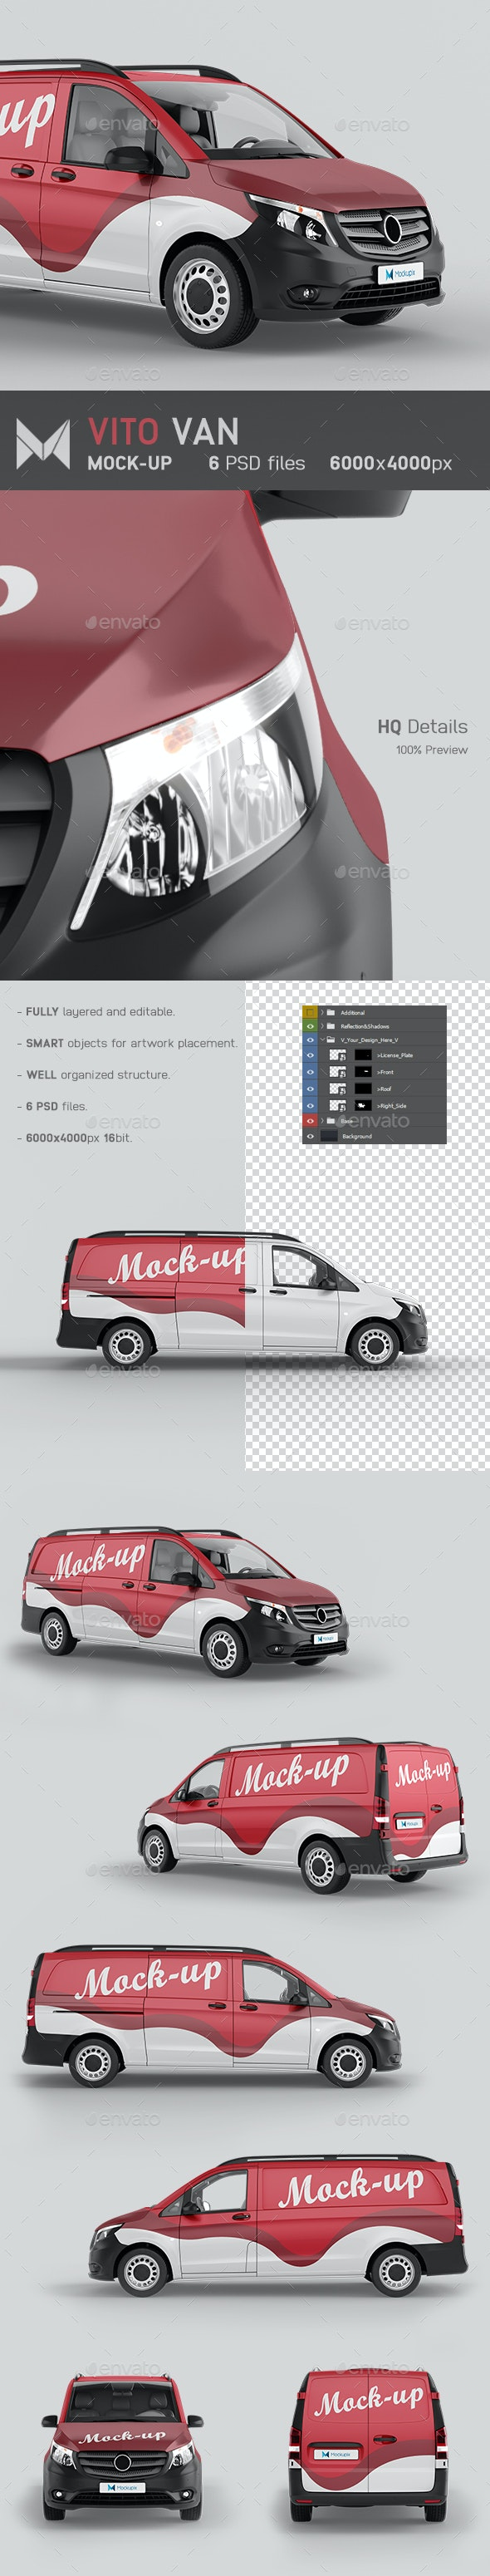 Vito Van 2019 Mockup - Vehicle Wraps Print